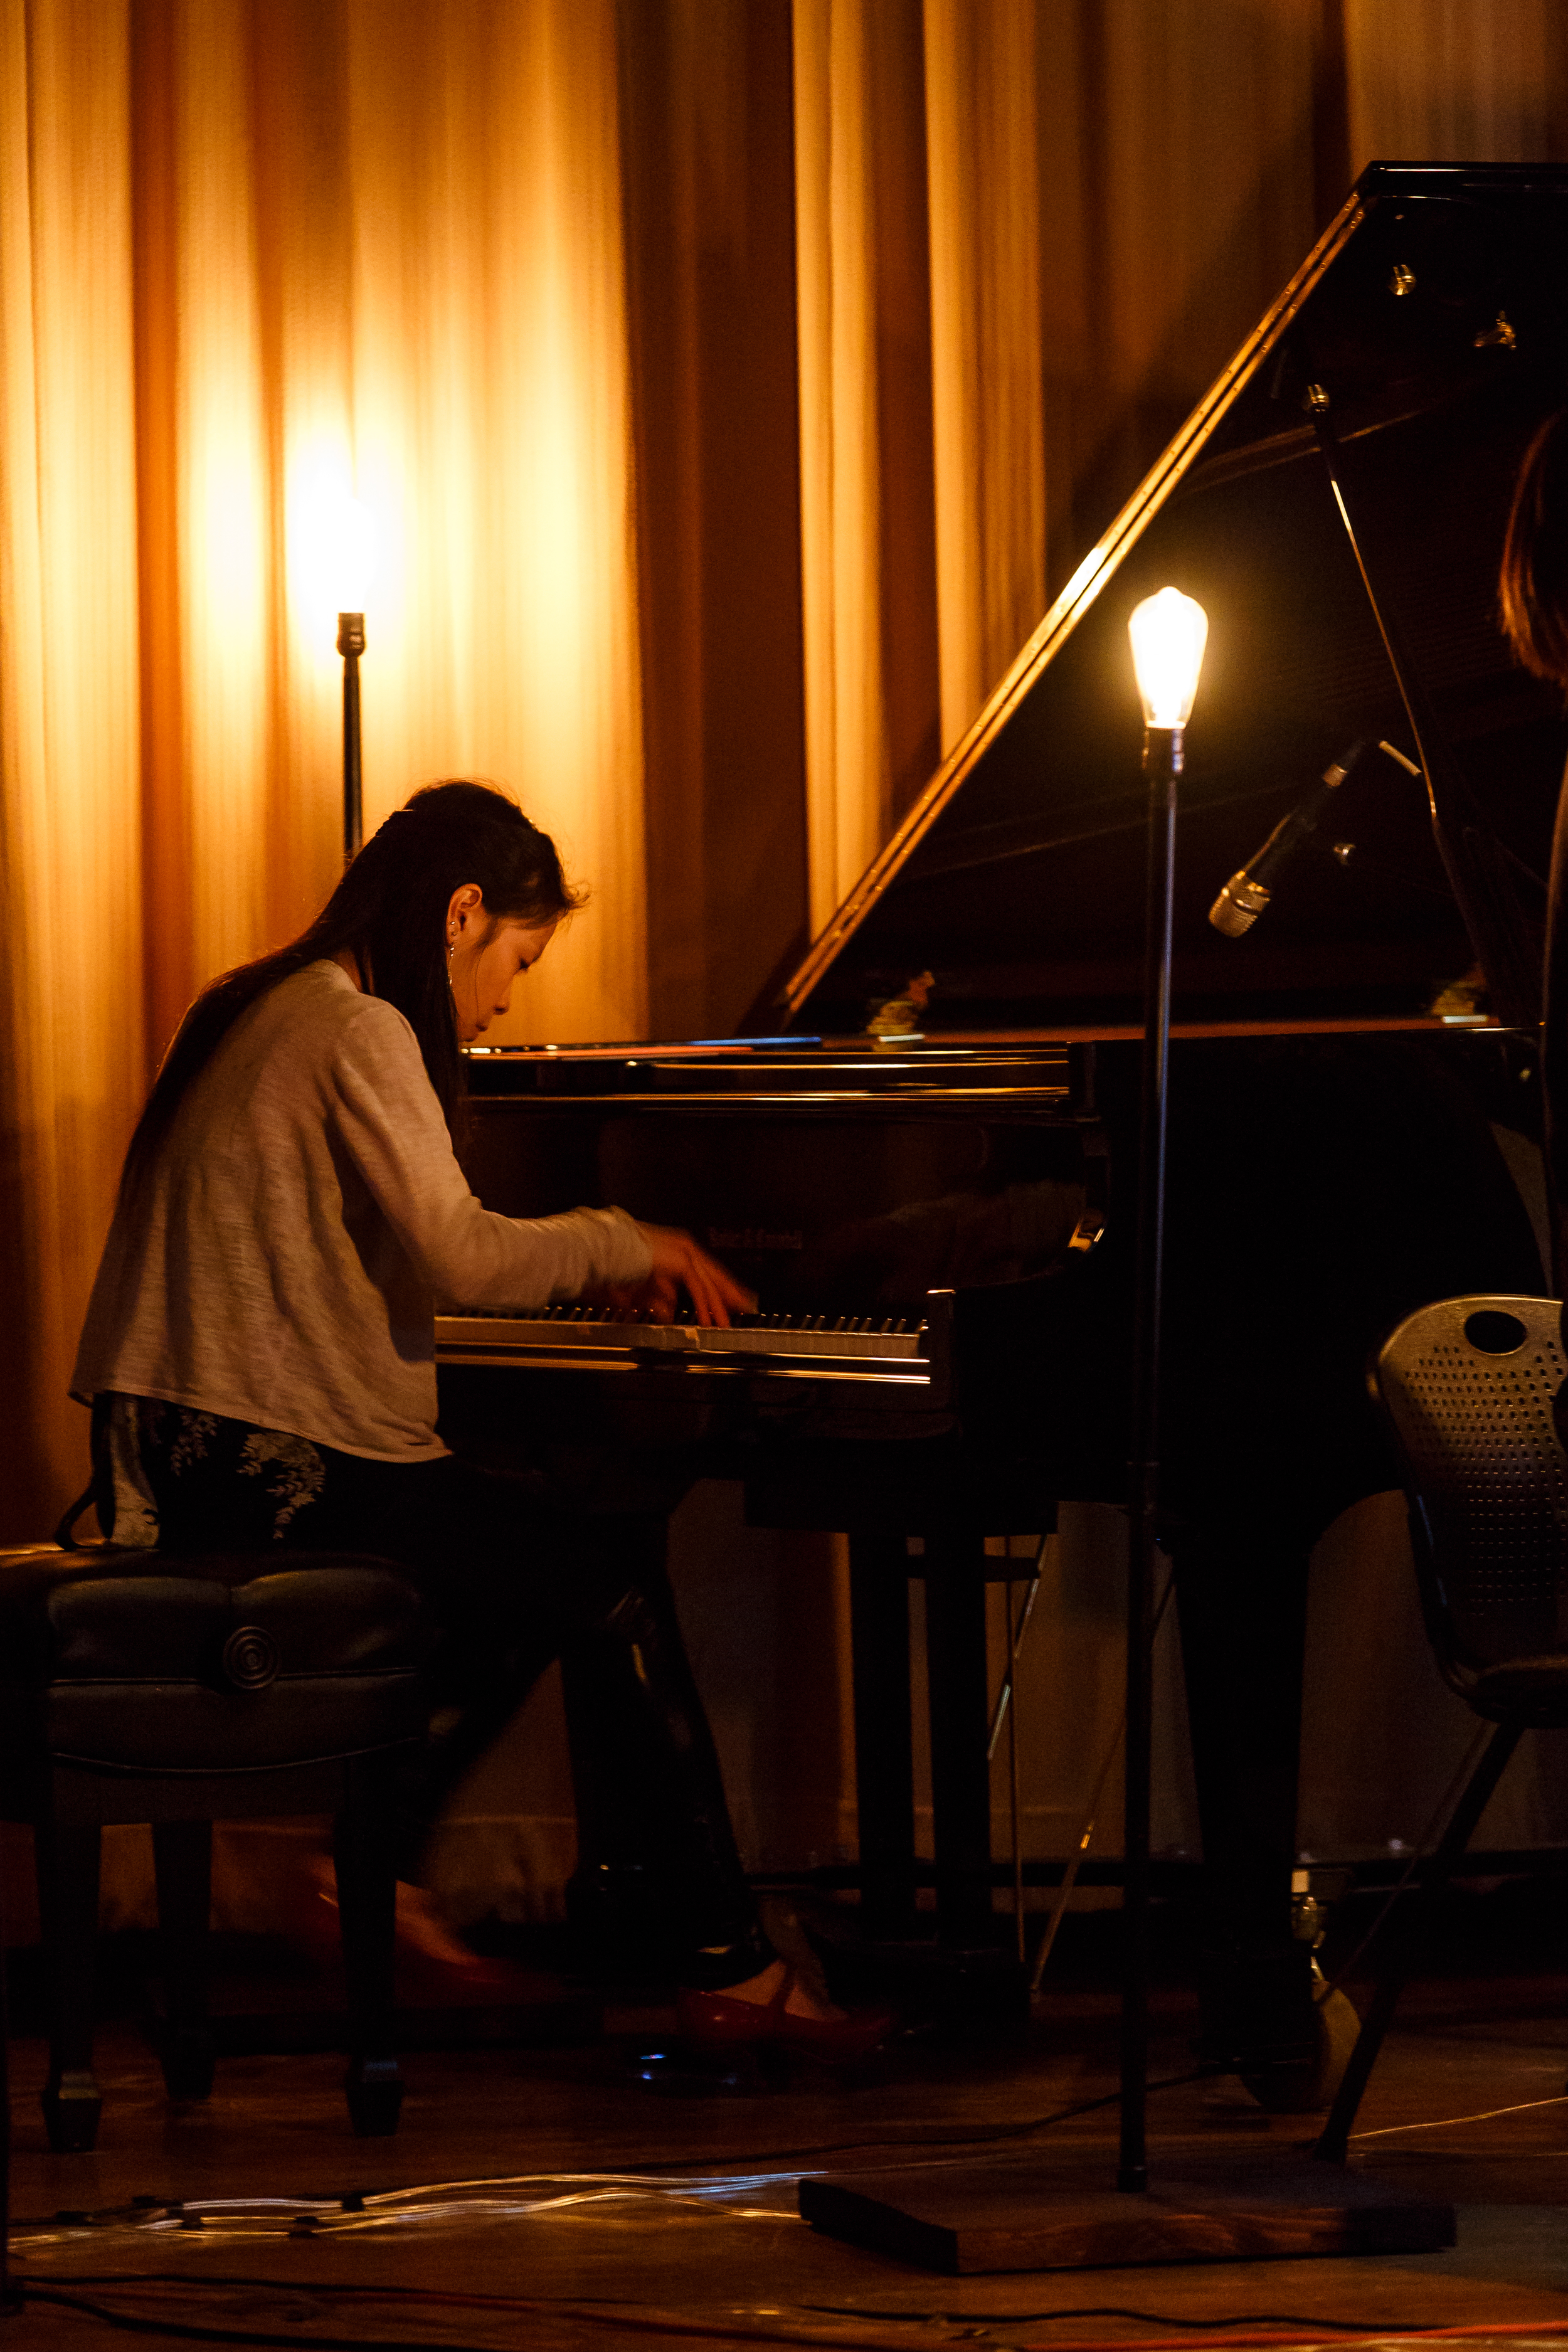 Our pianist Jeannette Fang performing with the lights.